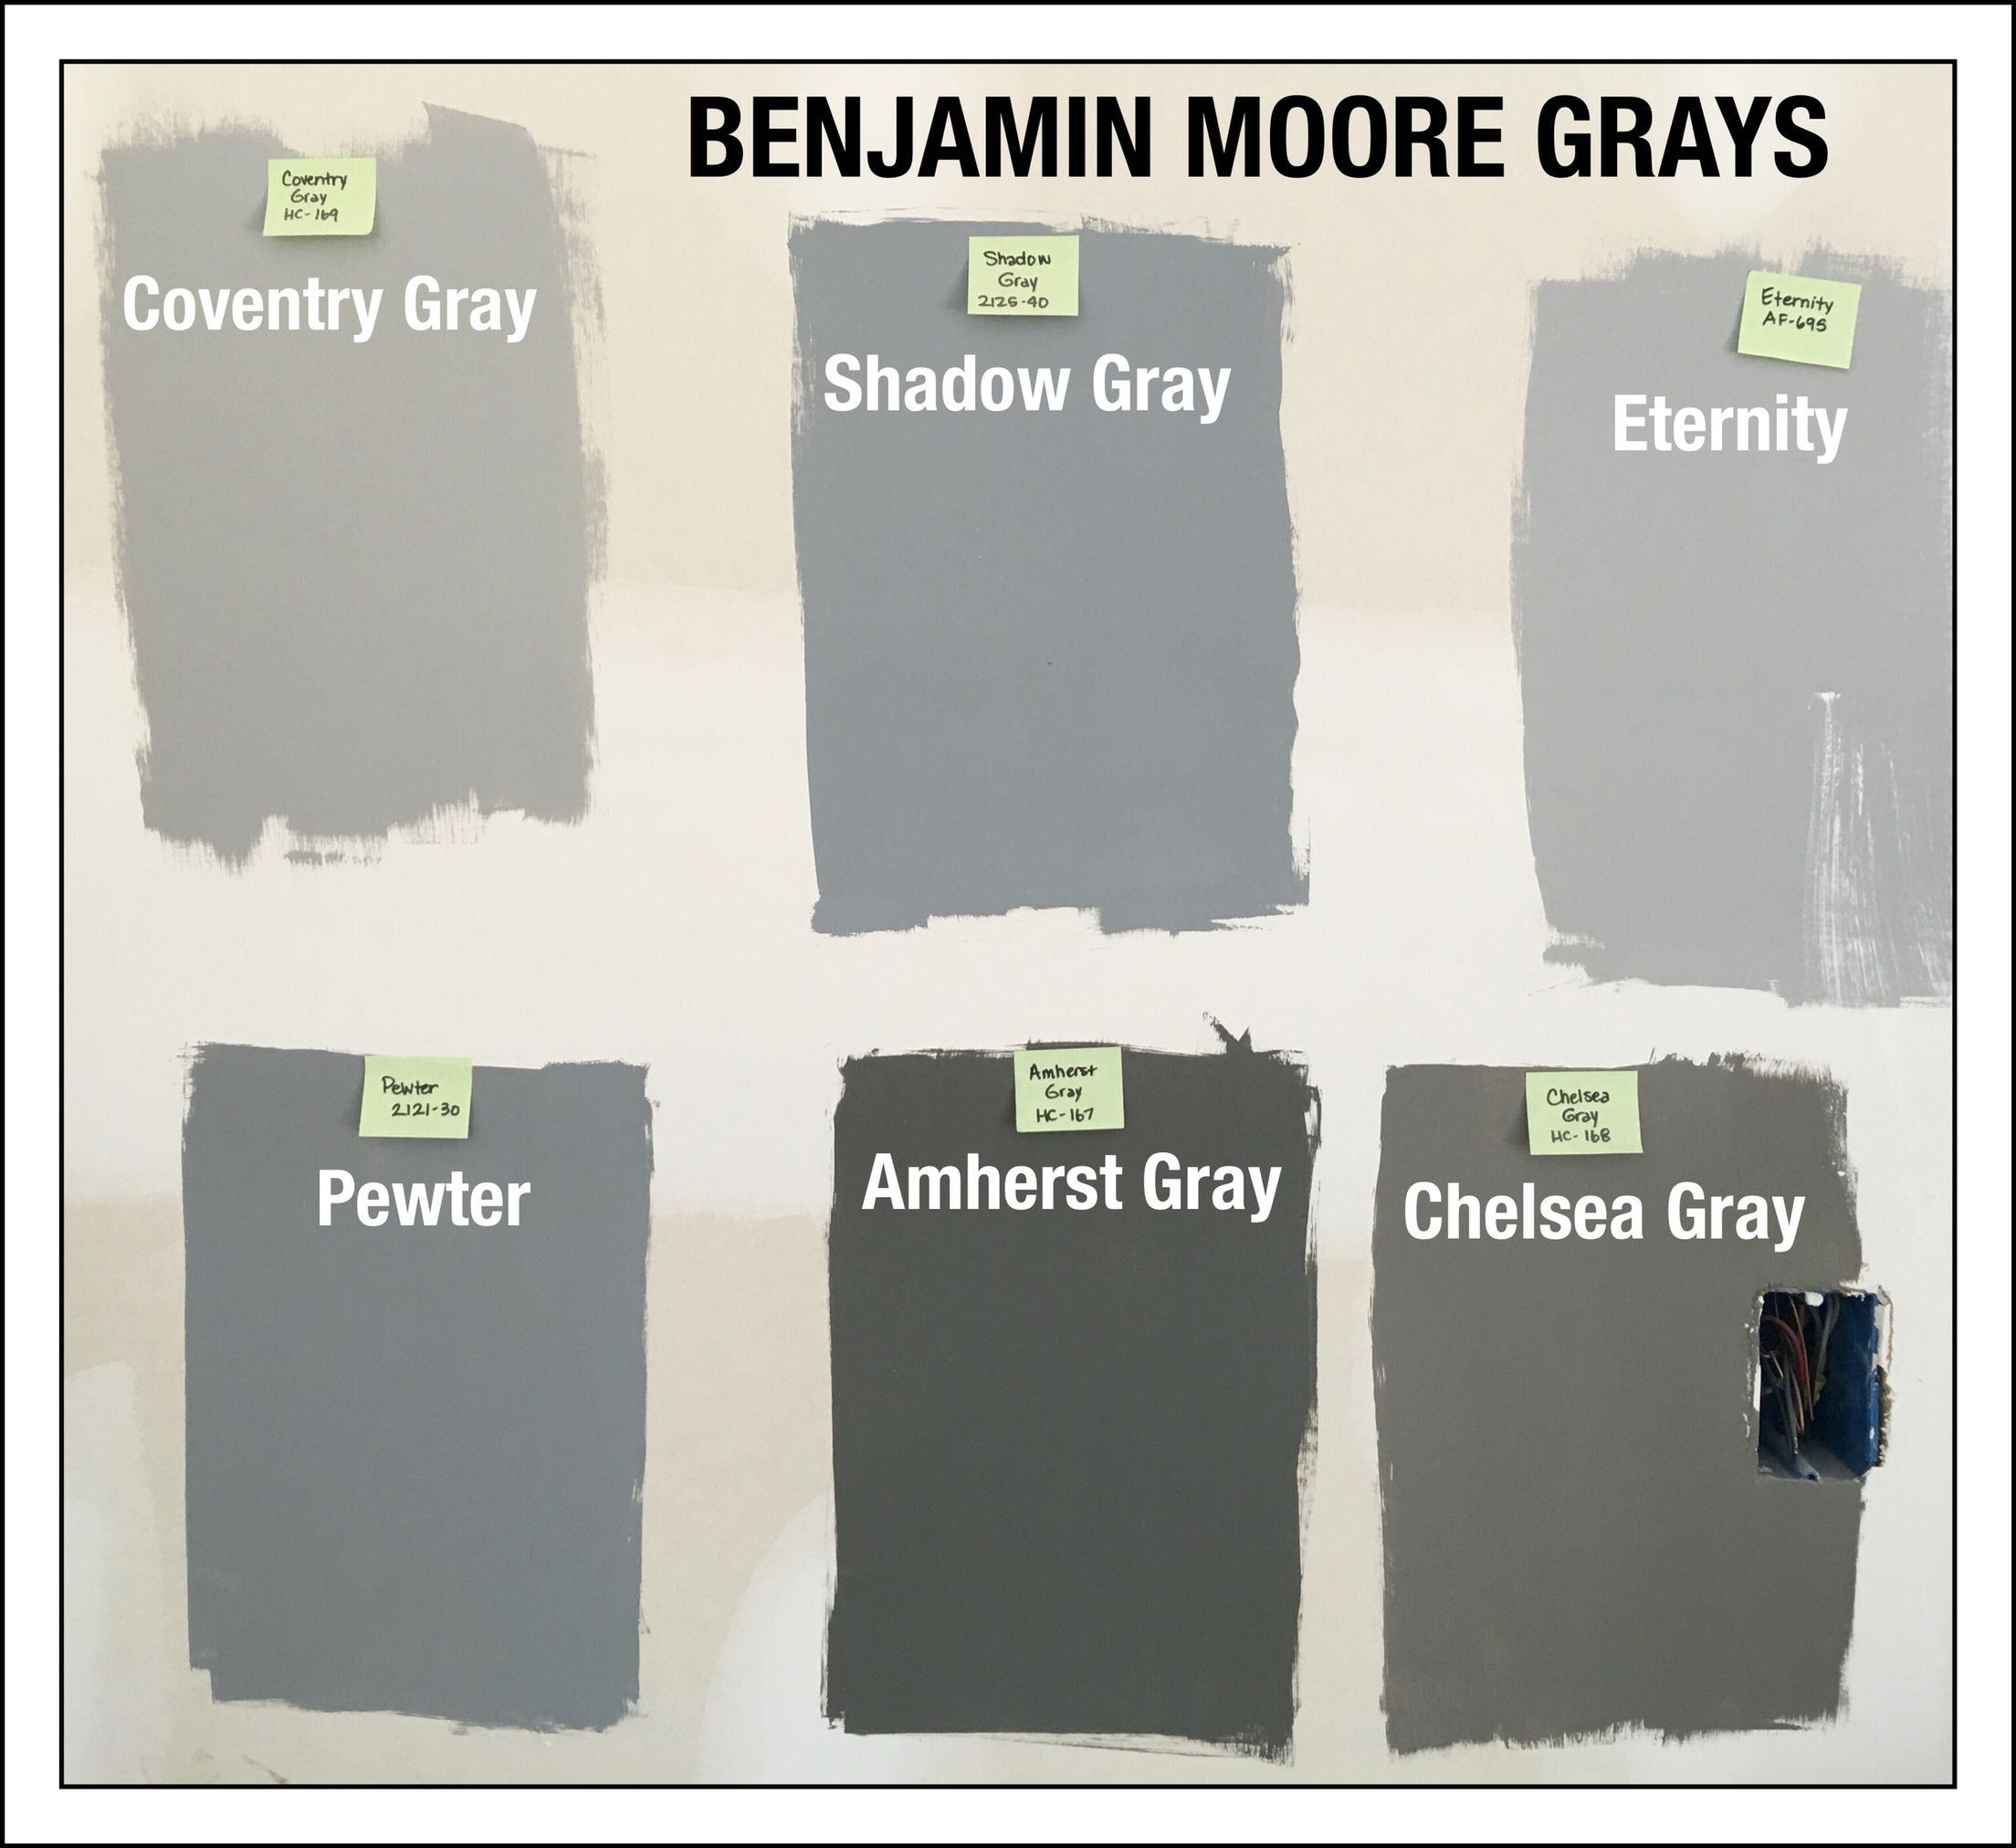 Benjamin moore gray paint swatches coventry gray hc 169 for Light gray color swatch